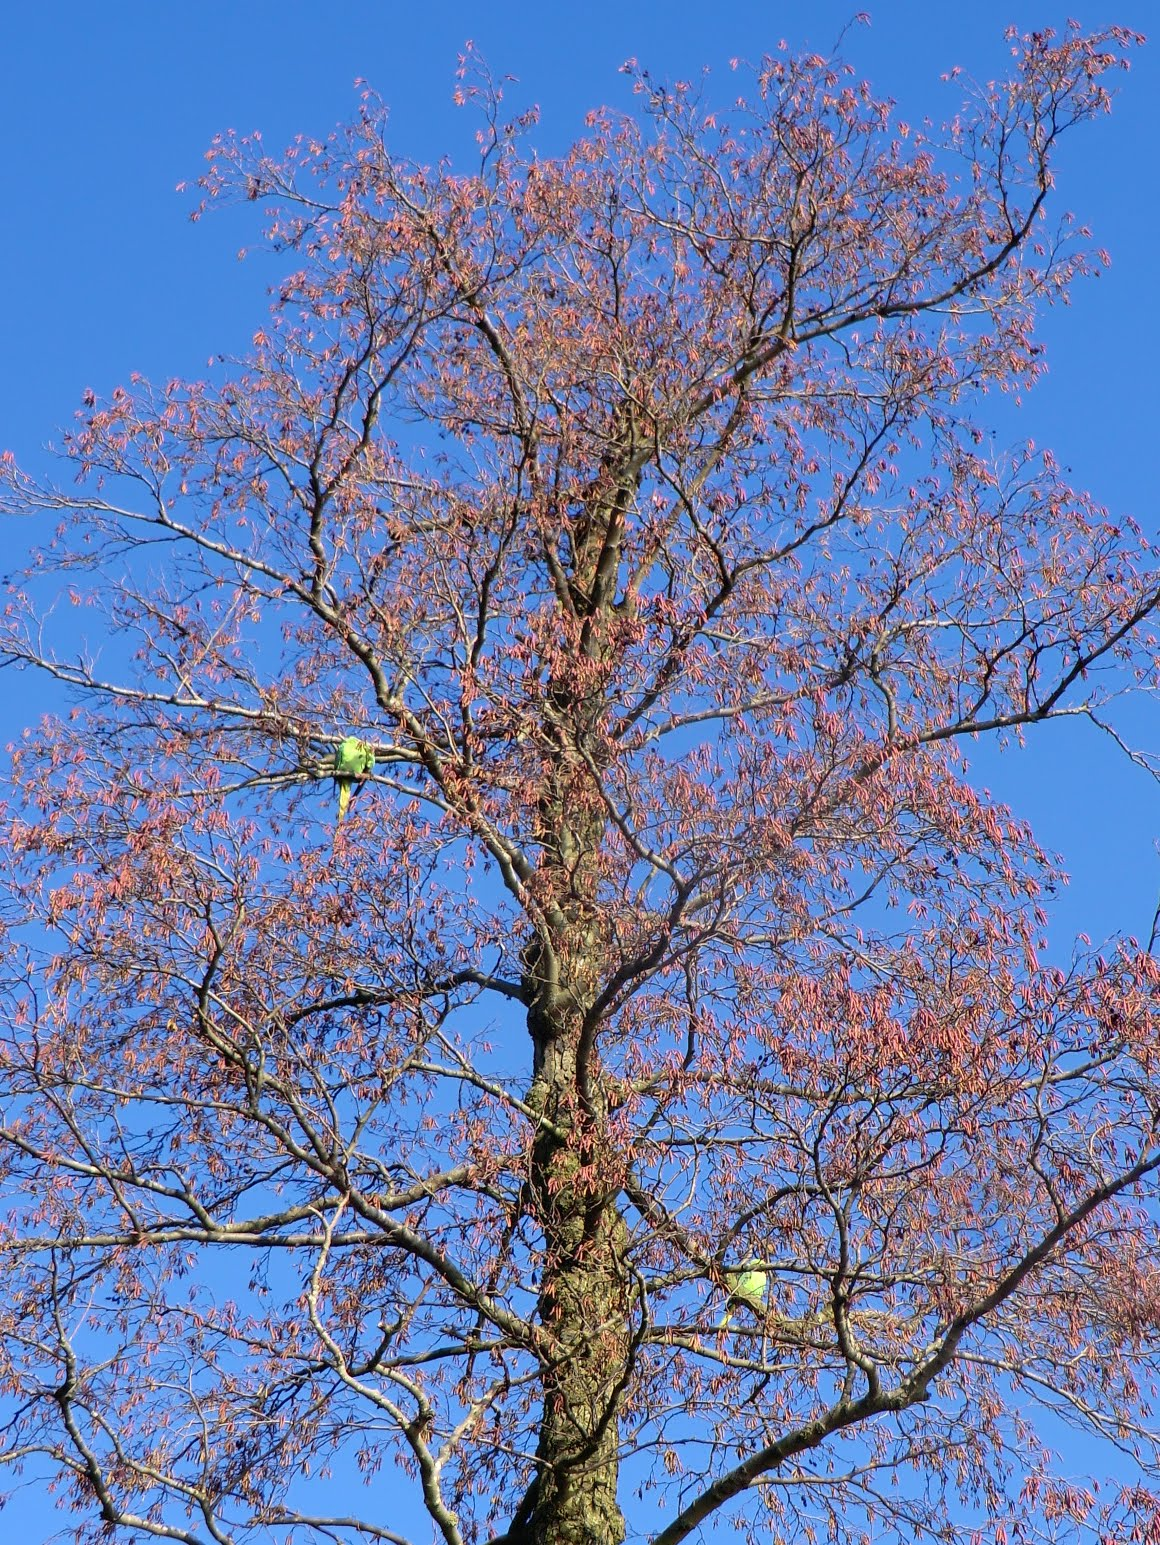 CIMG2328 Tree with parakeets, Richmond Park